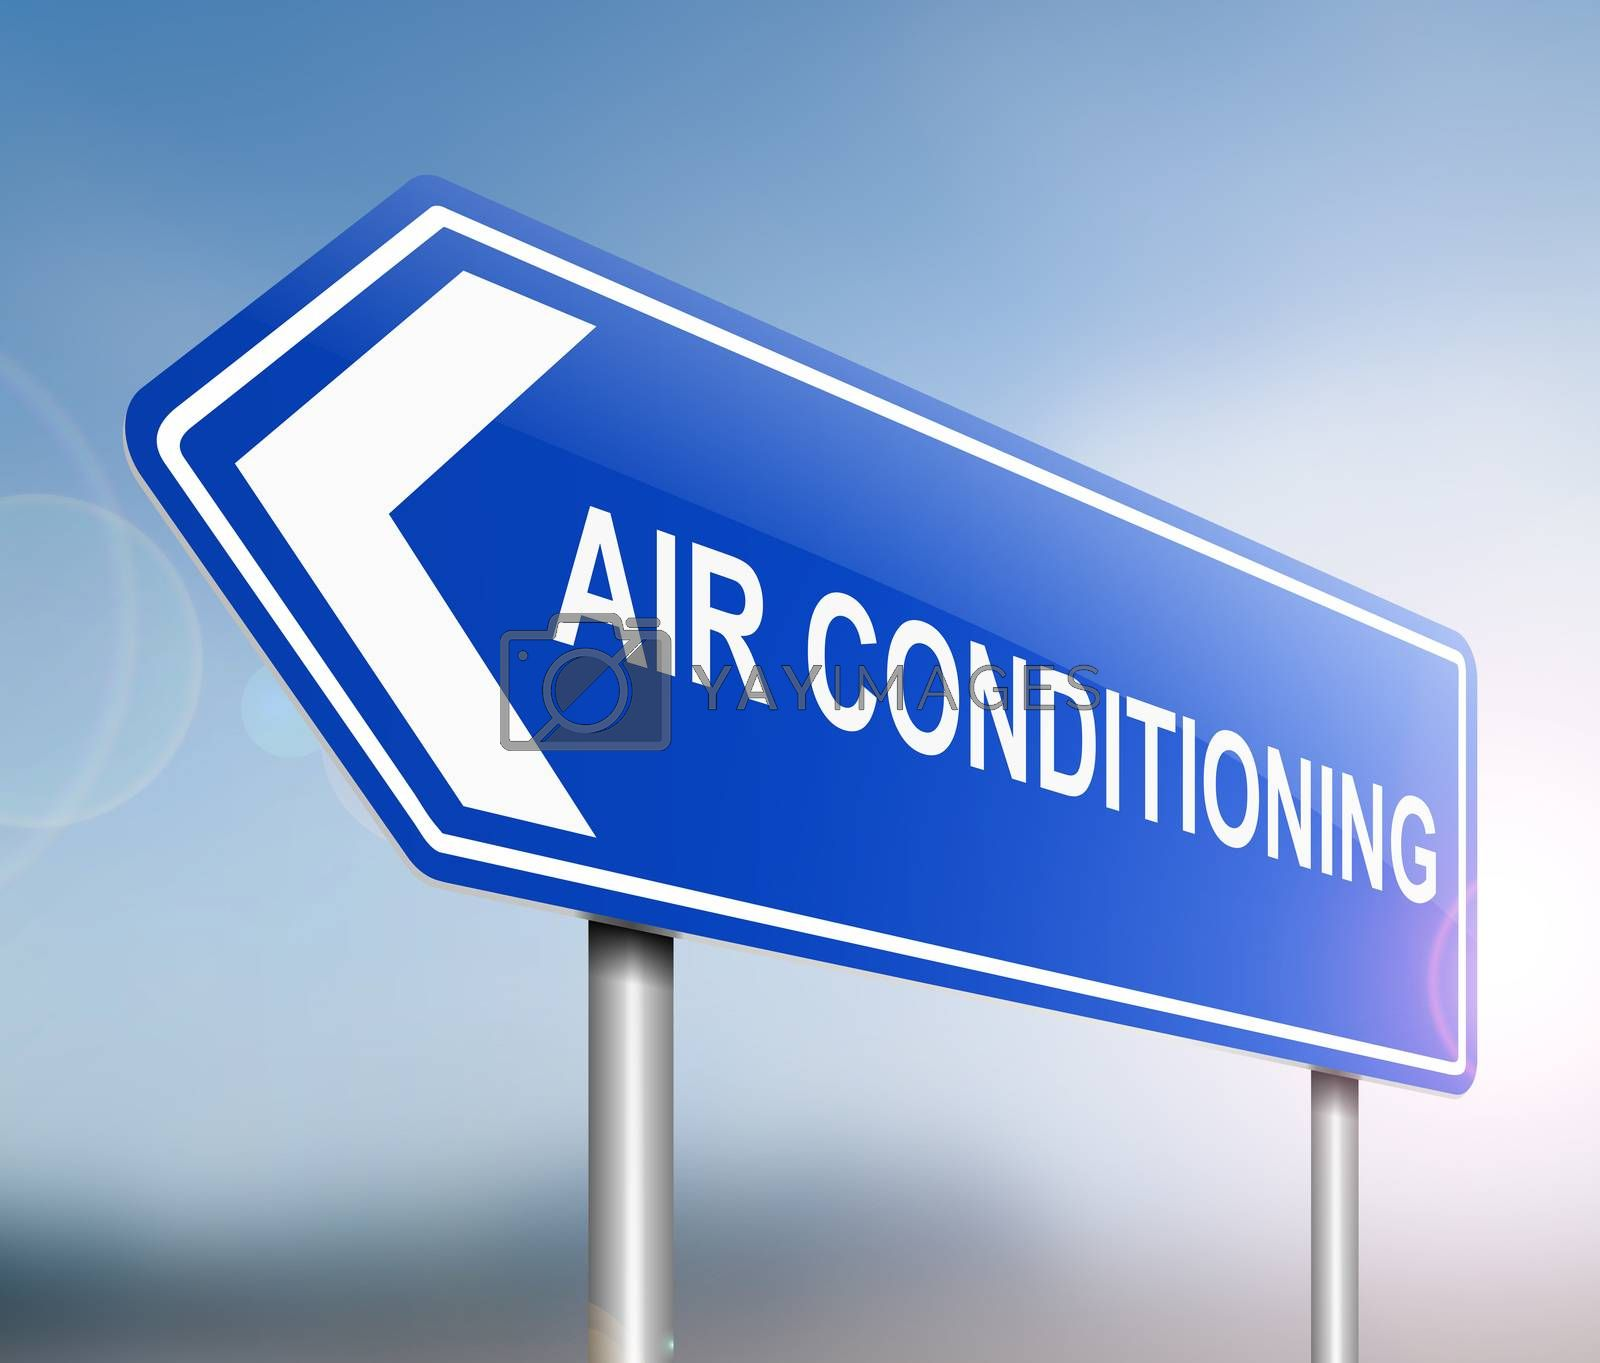 Illustration depicting a sign with an air conditioning concept.